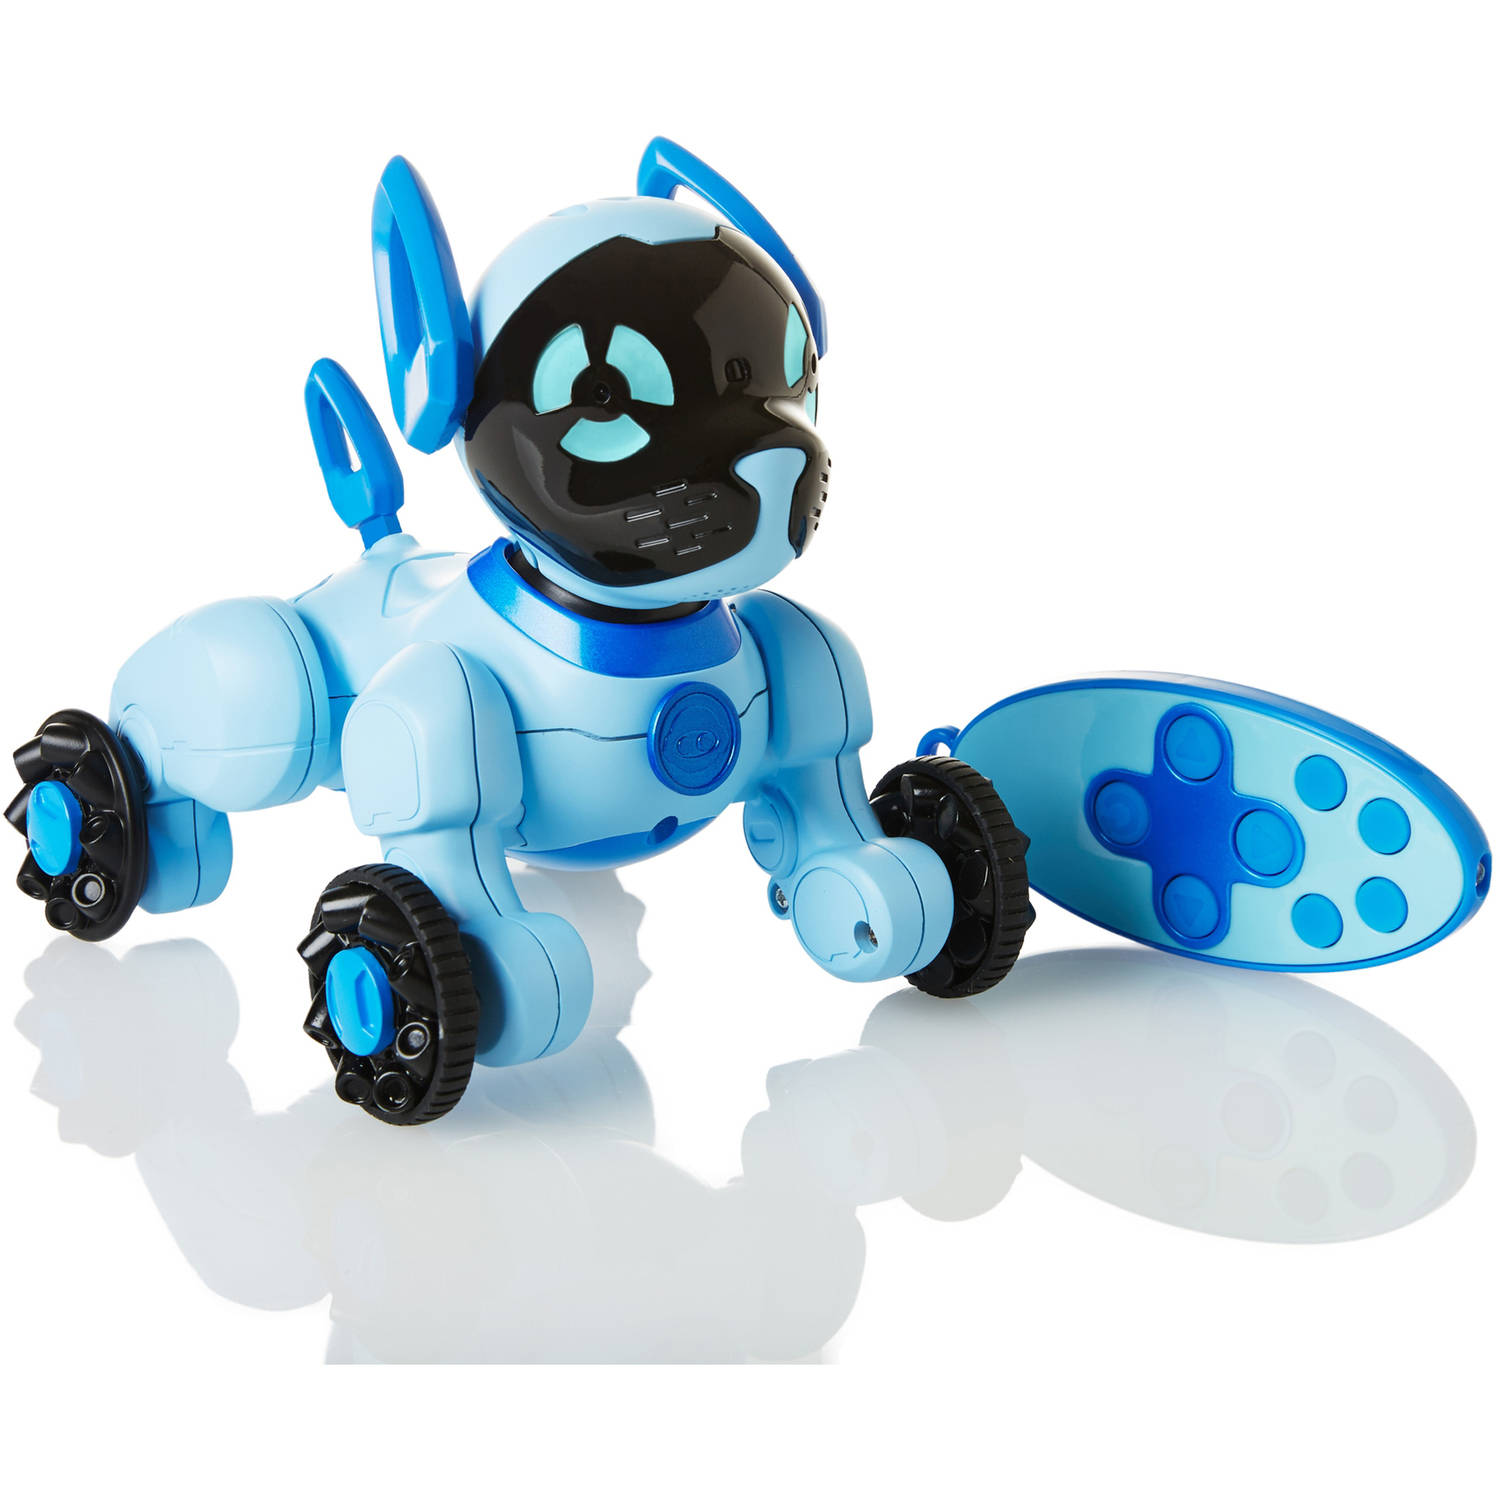 CHiPPiES Robot Dog Chipper (Blue) by WowWee